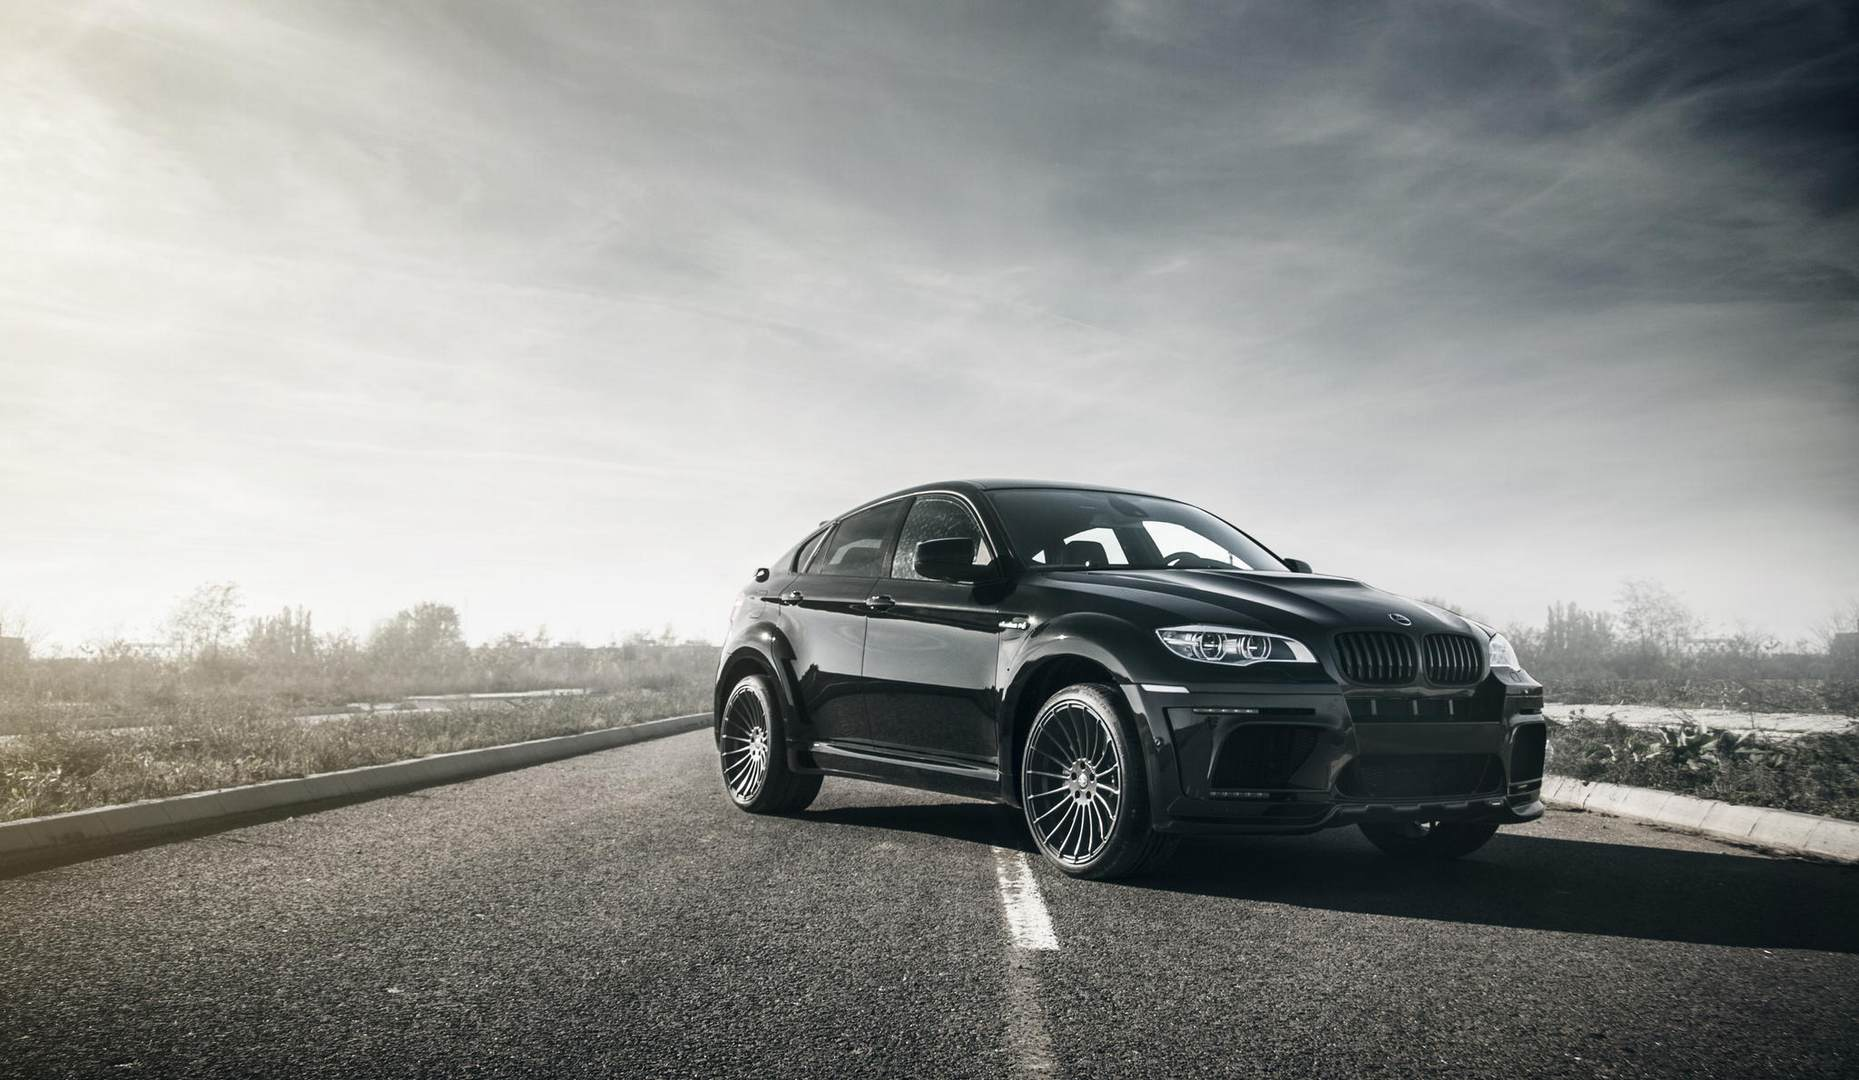 Bmw X6 Wallpapers 1347815 Hd Wallpaper Backgrounds